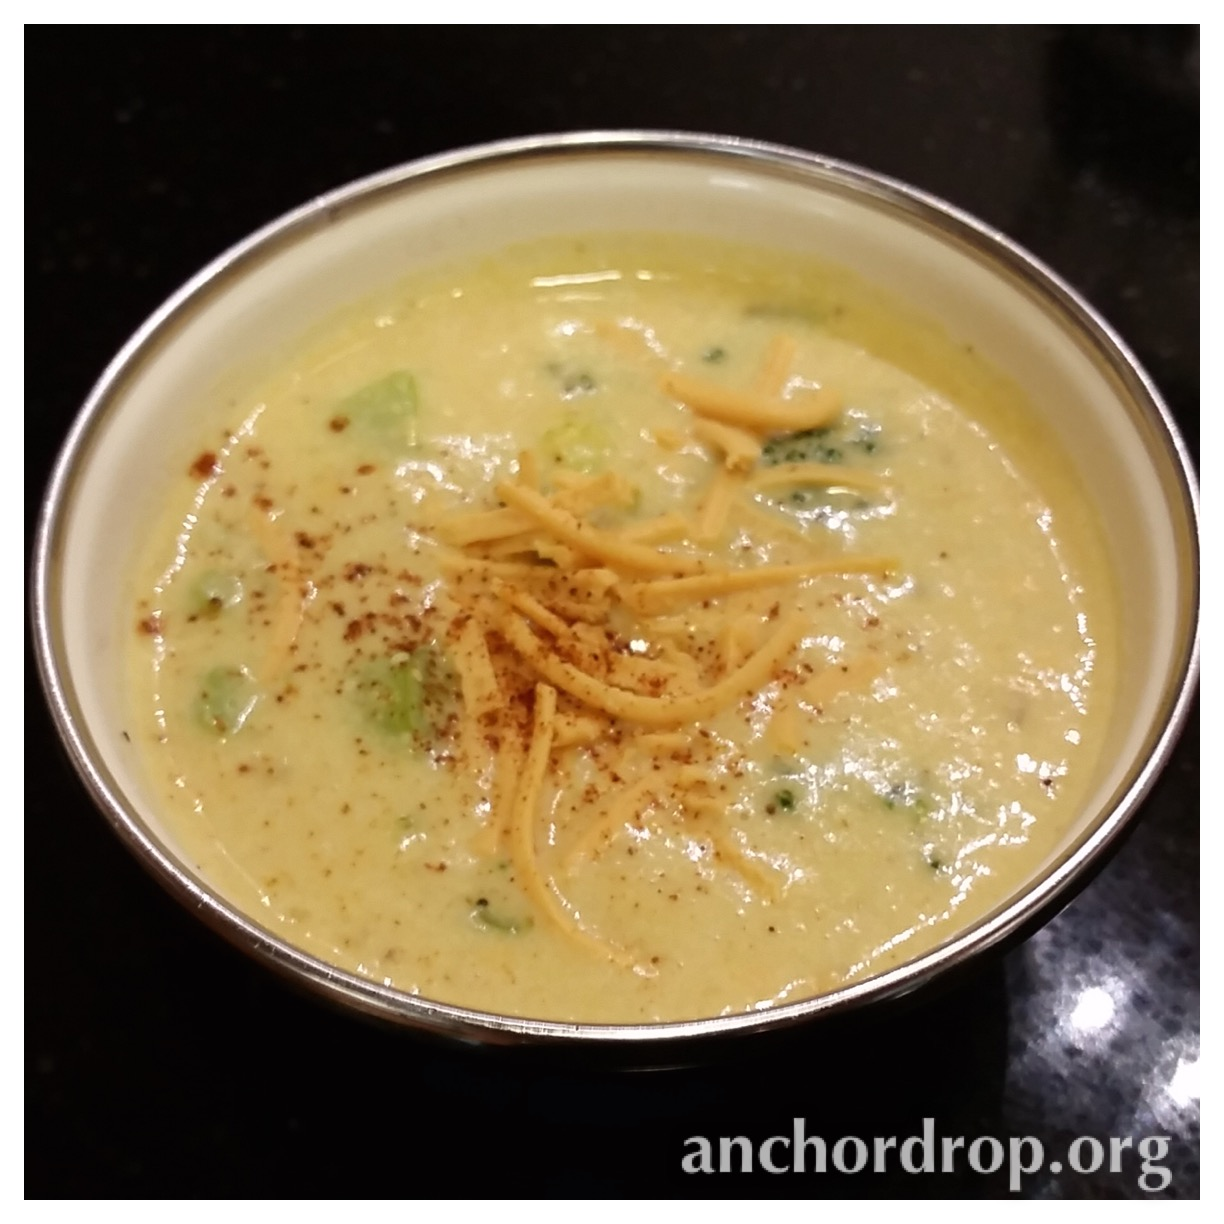 broccolicheddarsoup